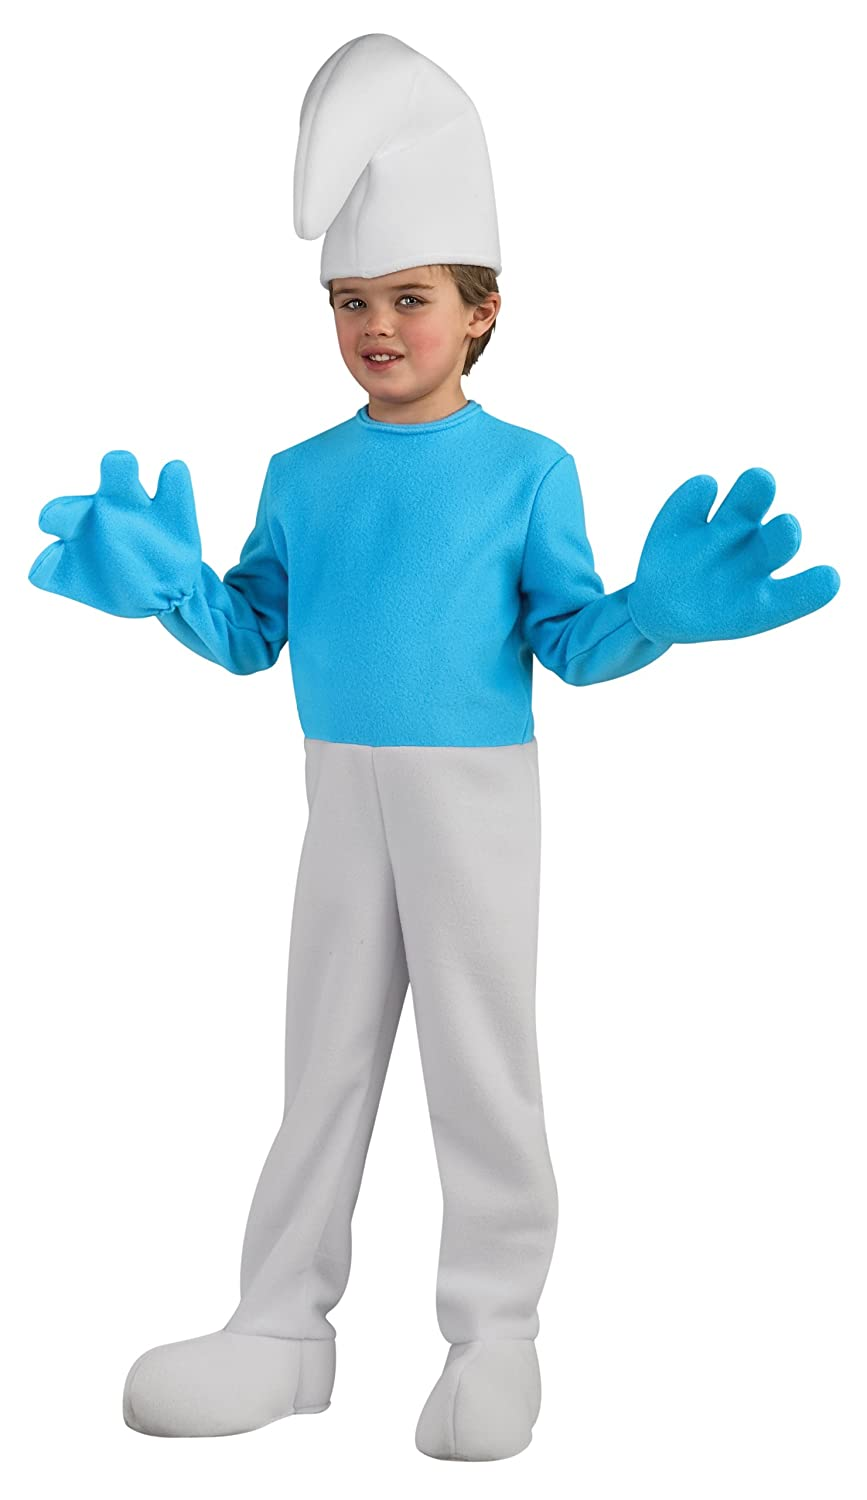 Amazon.com: The Smurfs Movie Deluxe Child's Costume, Smurf Costume ...